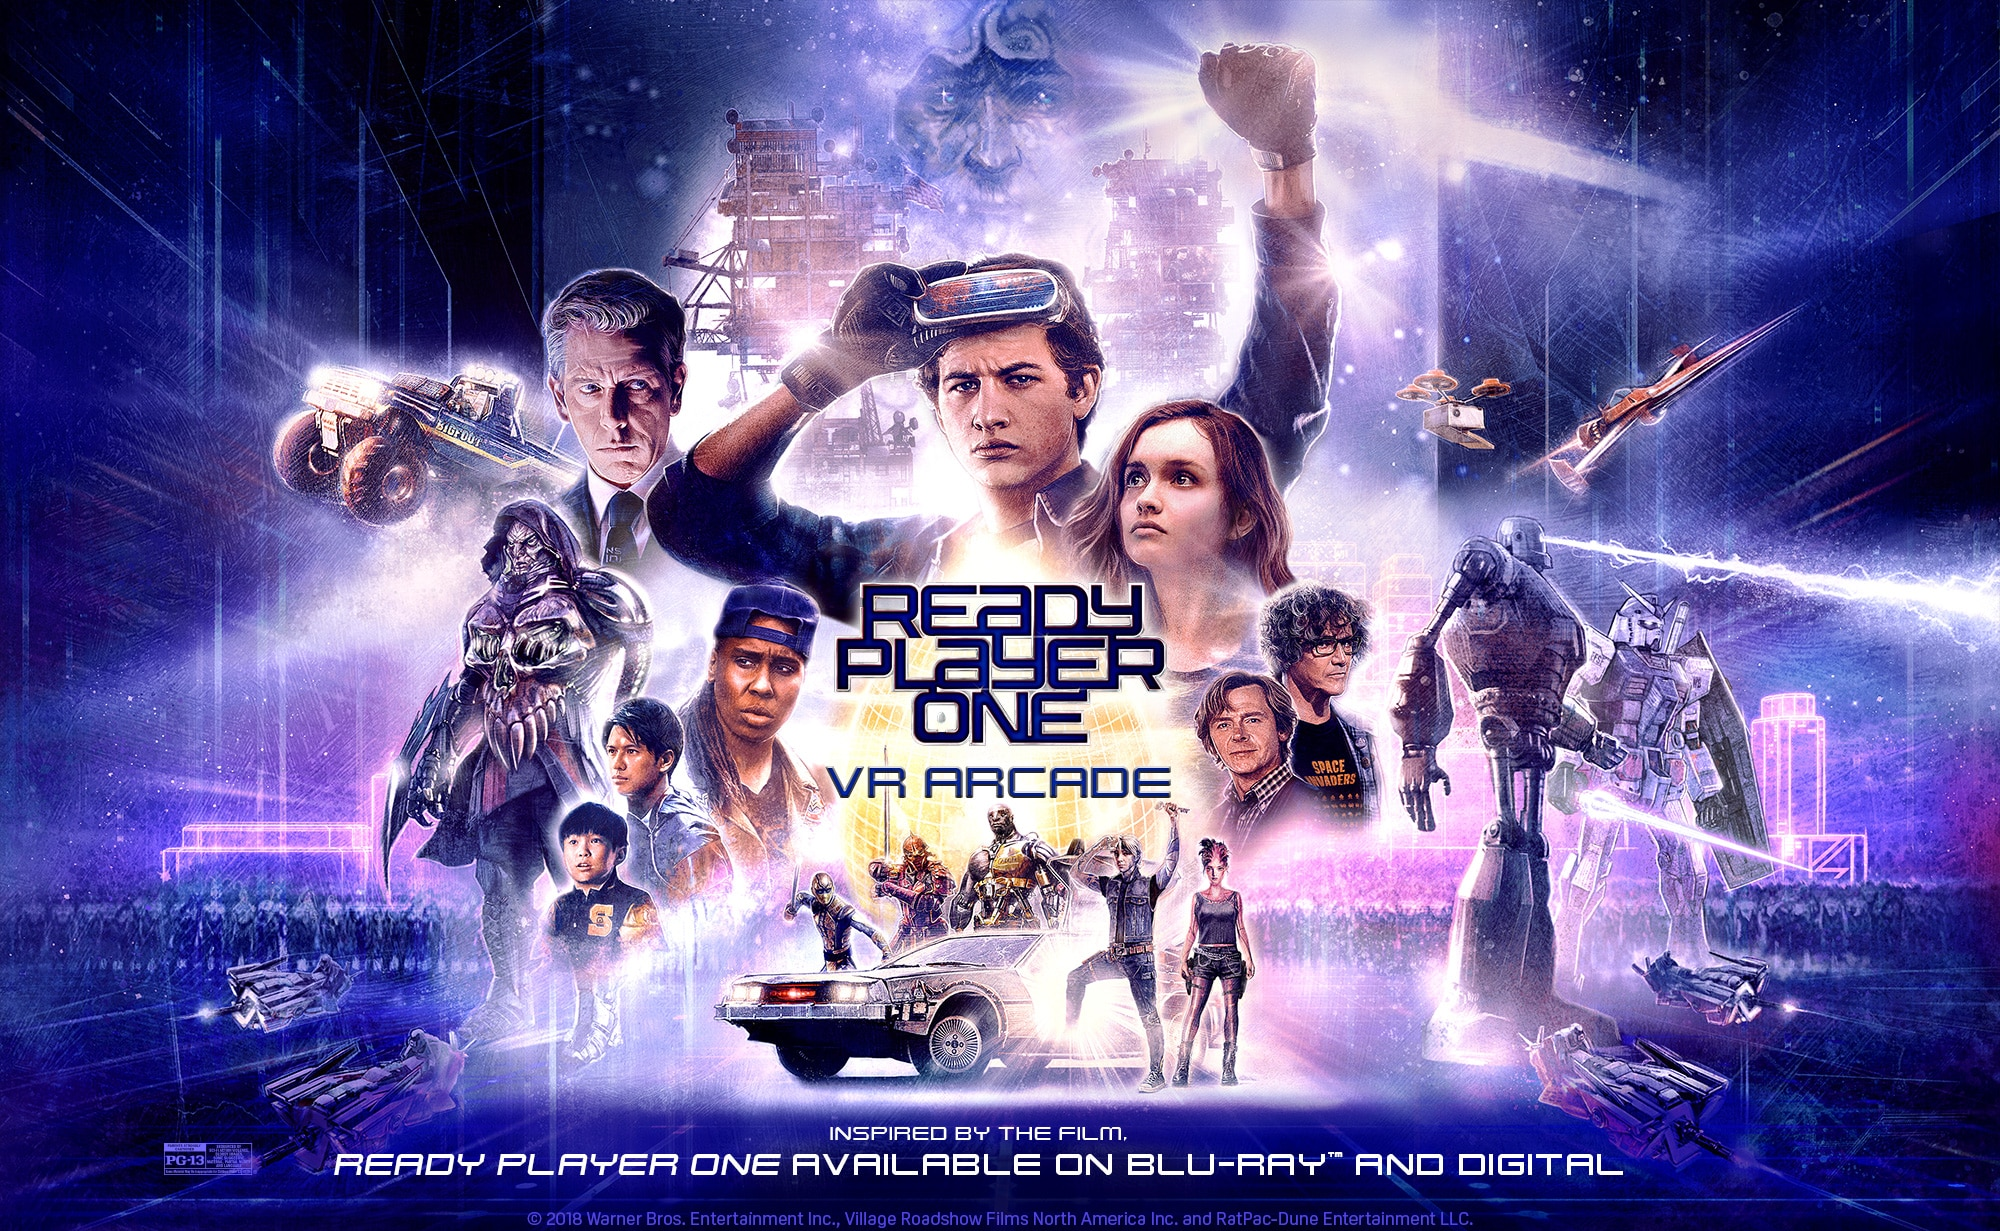 Ready Player One VR Arcade